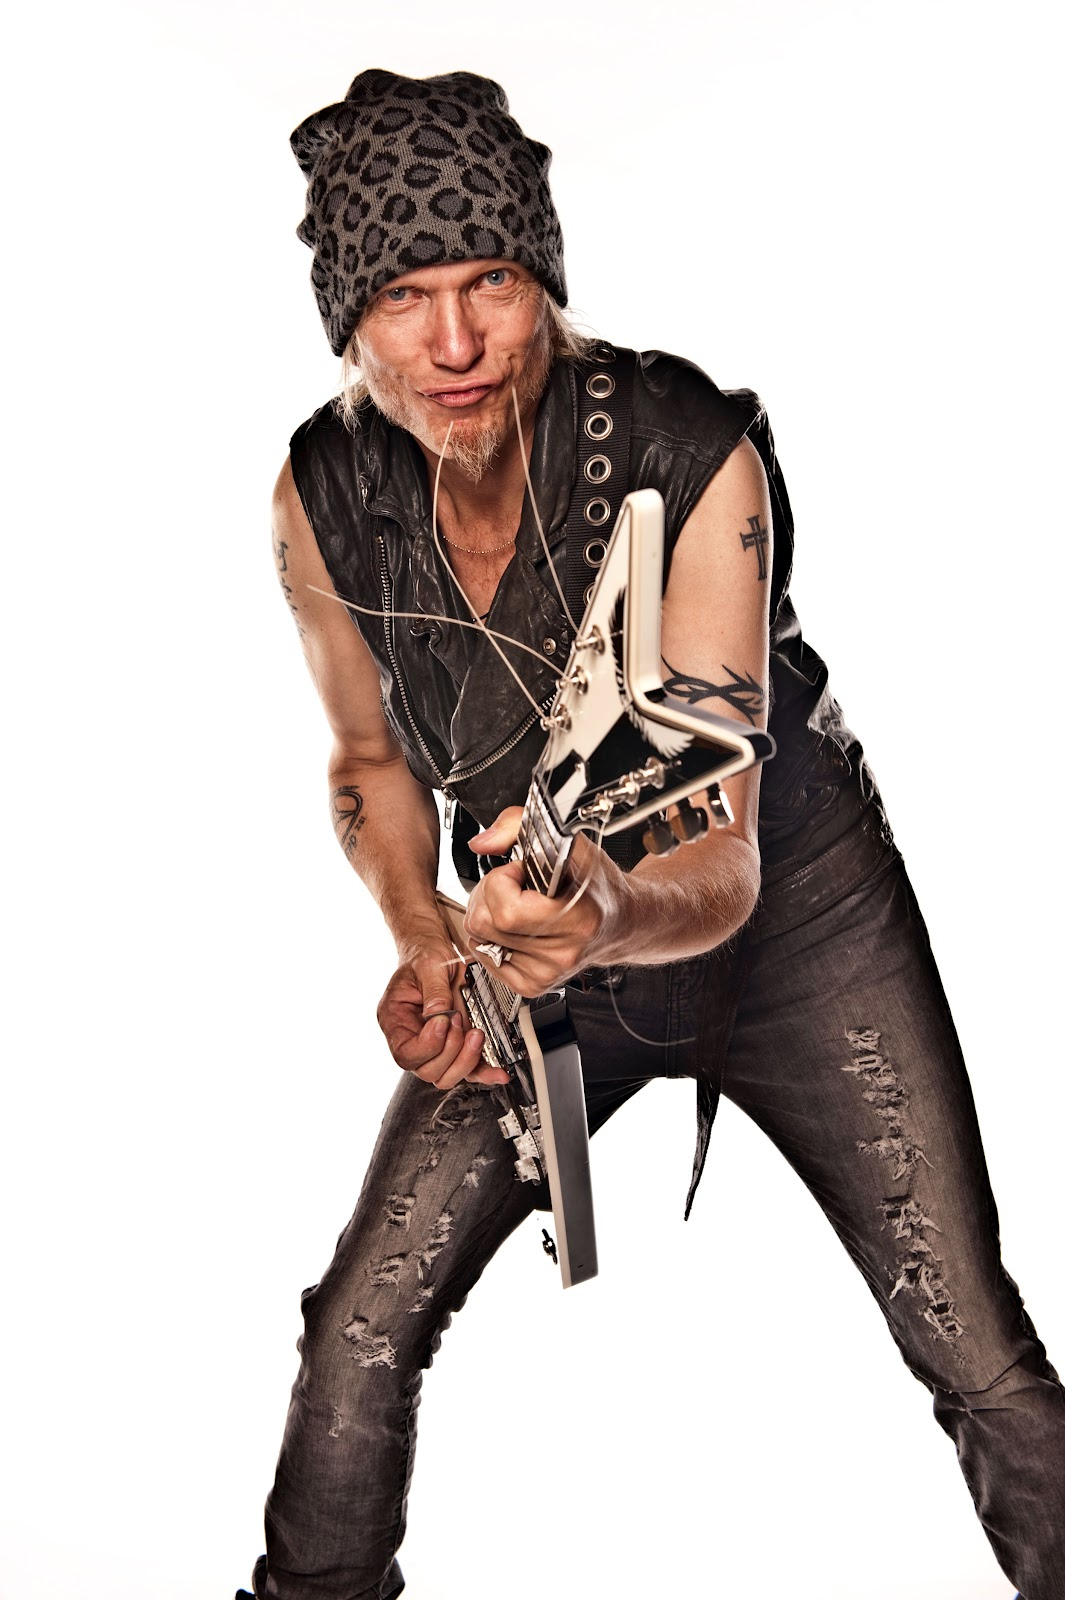 Michael Schenker Net Worth